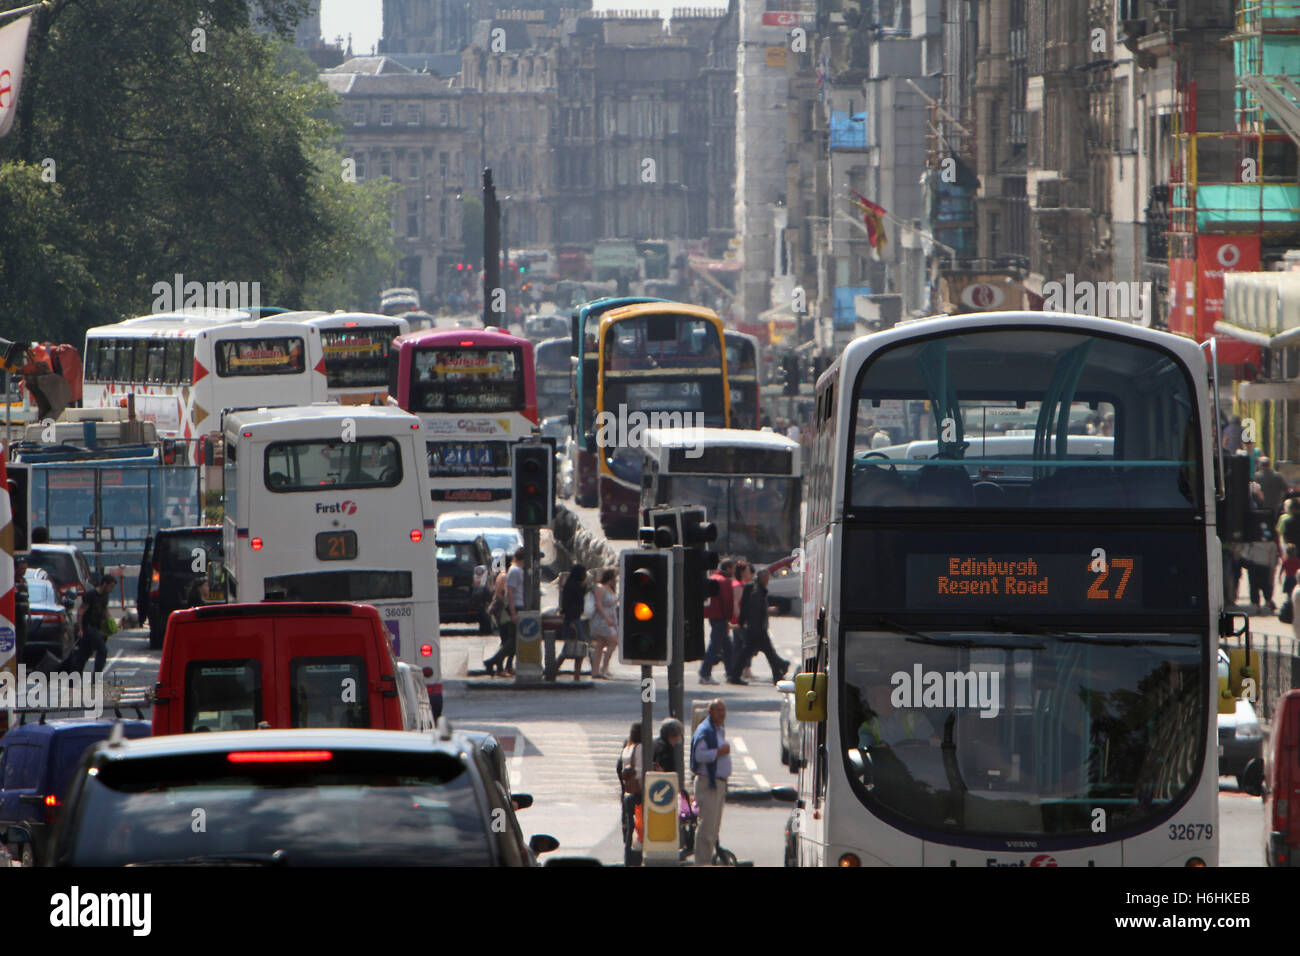 Traffic congestion in Edinburgh showing Princes Street - Stock Image